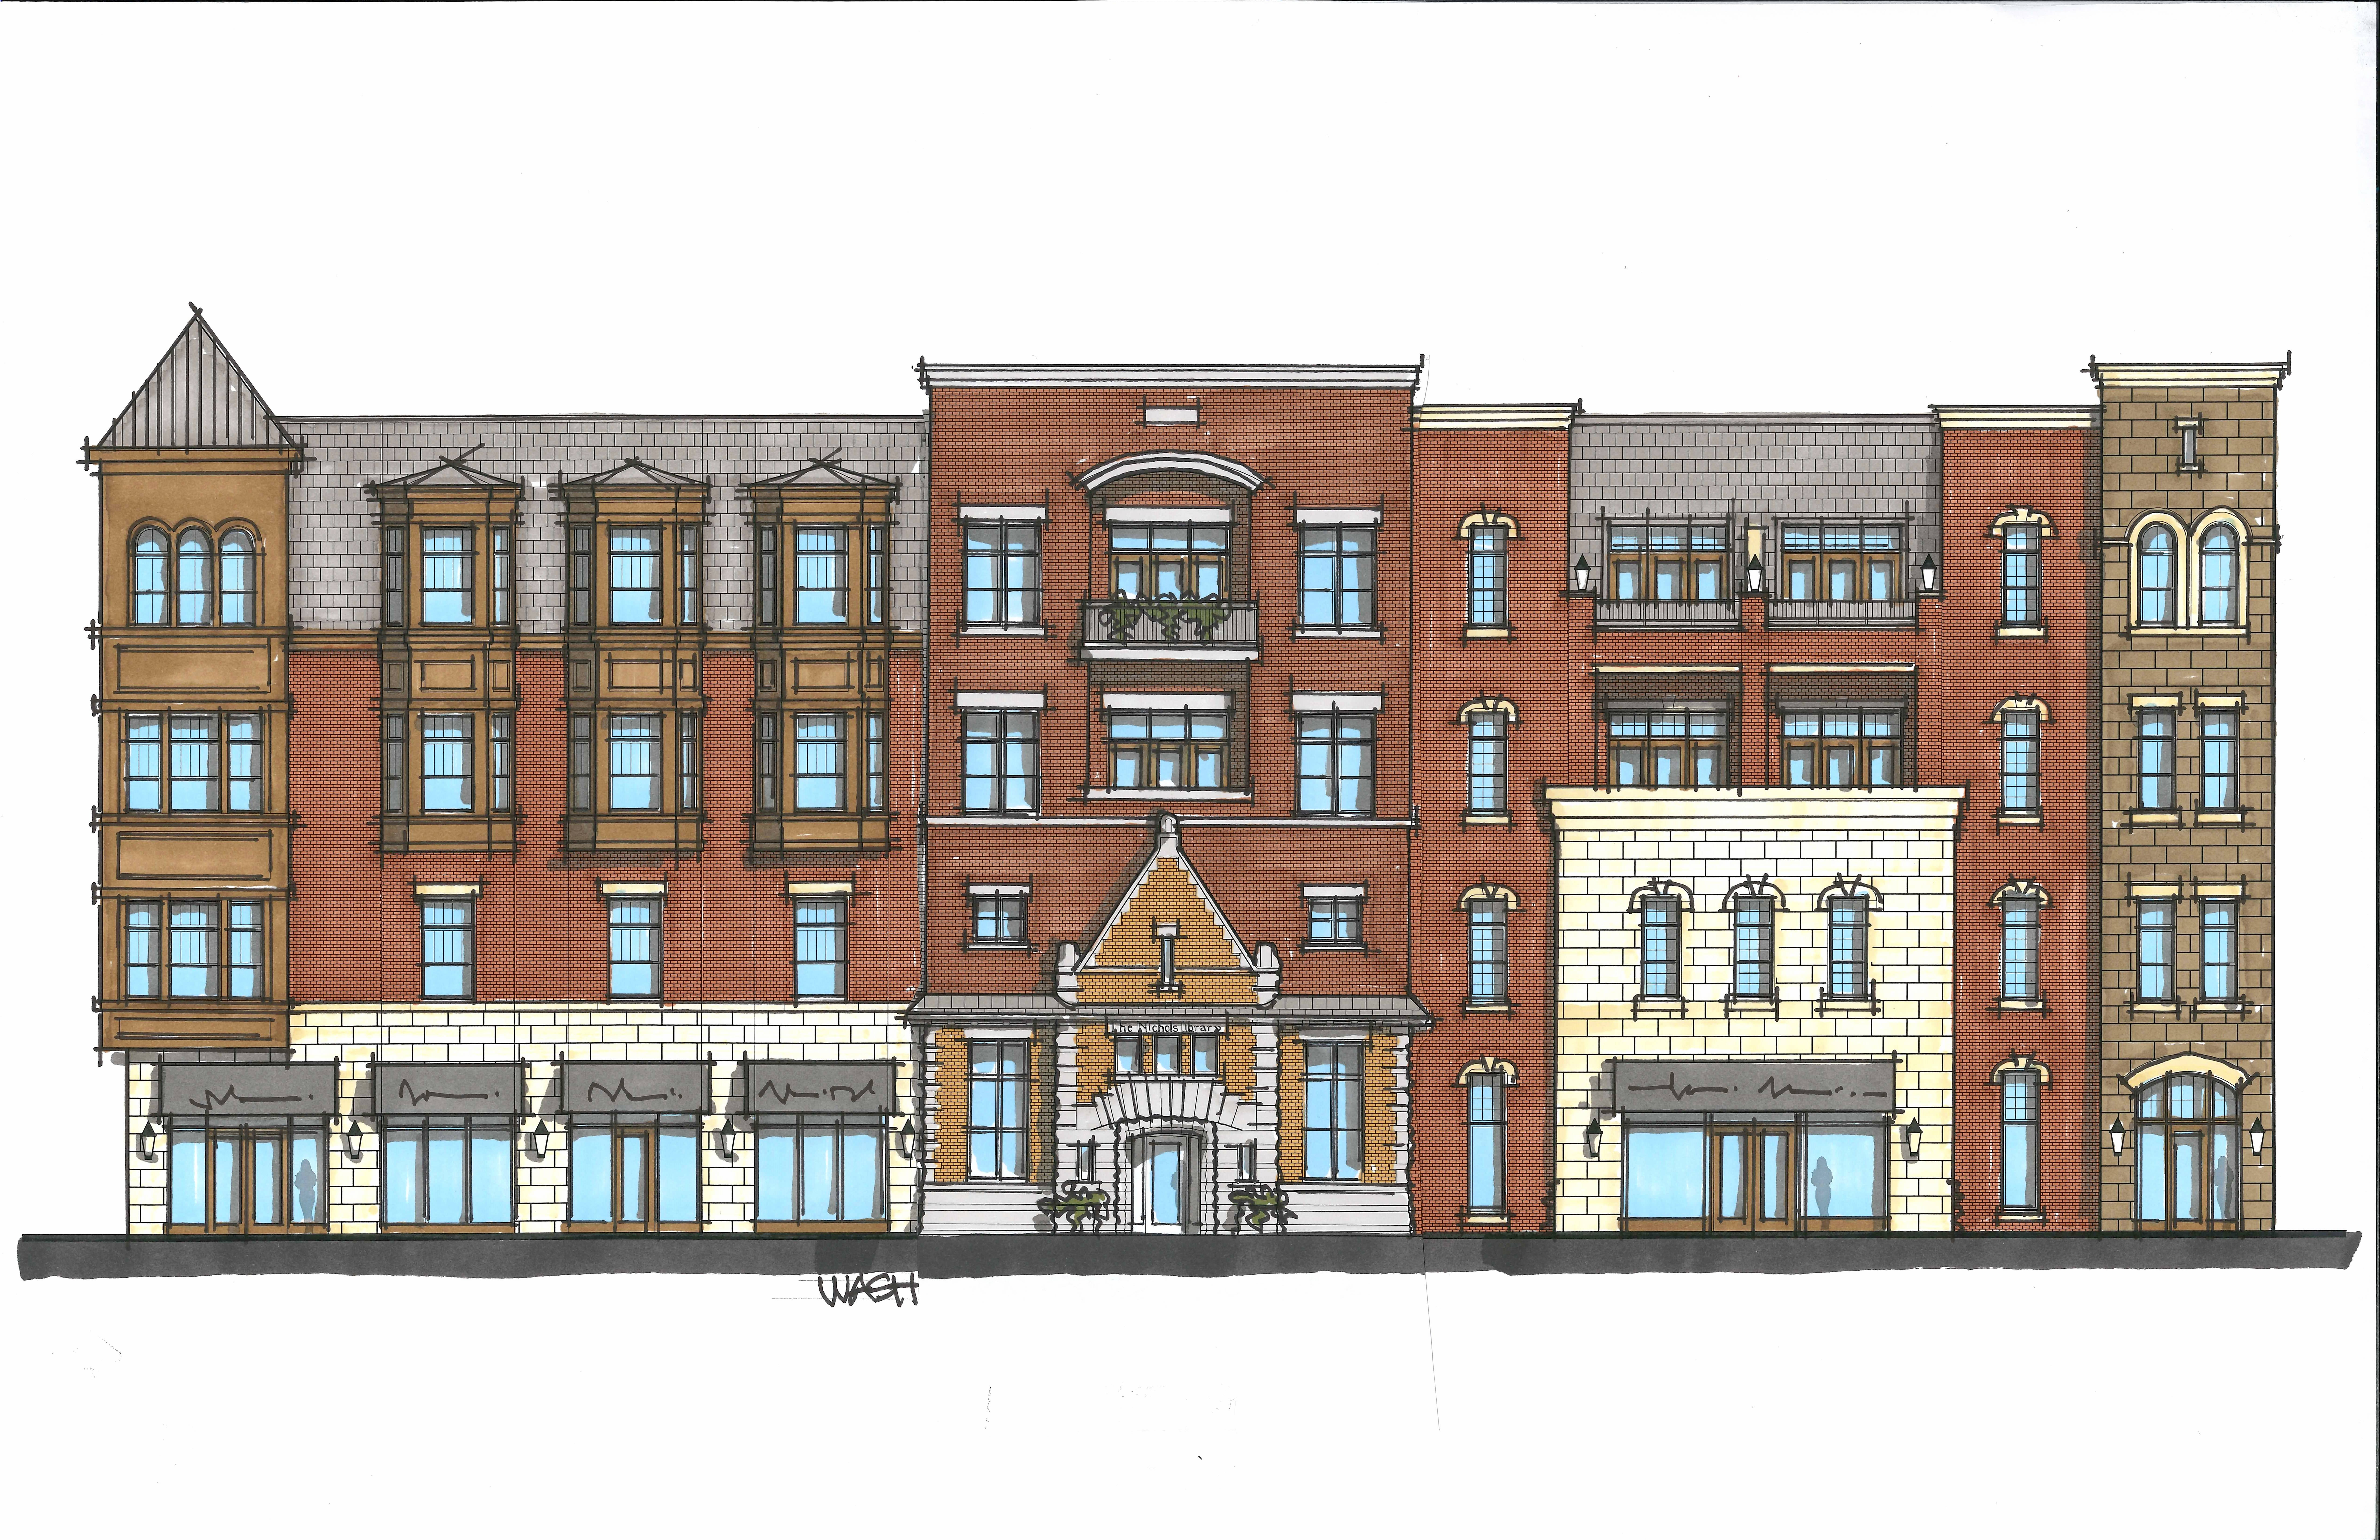 One option for the proposed redevelopment of the historic former Nichols Library in downtown Naperville includes the 1898 building's western facade in the center of a new mixed-use facility for retail, offices and condos facing Washington Street.